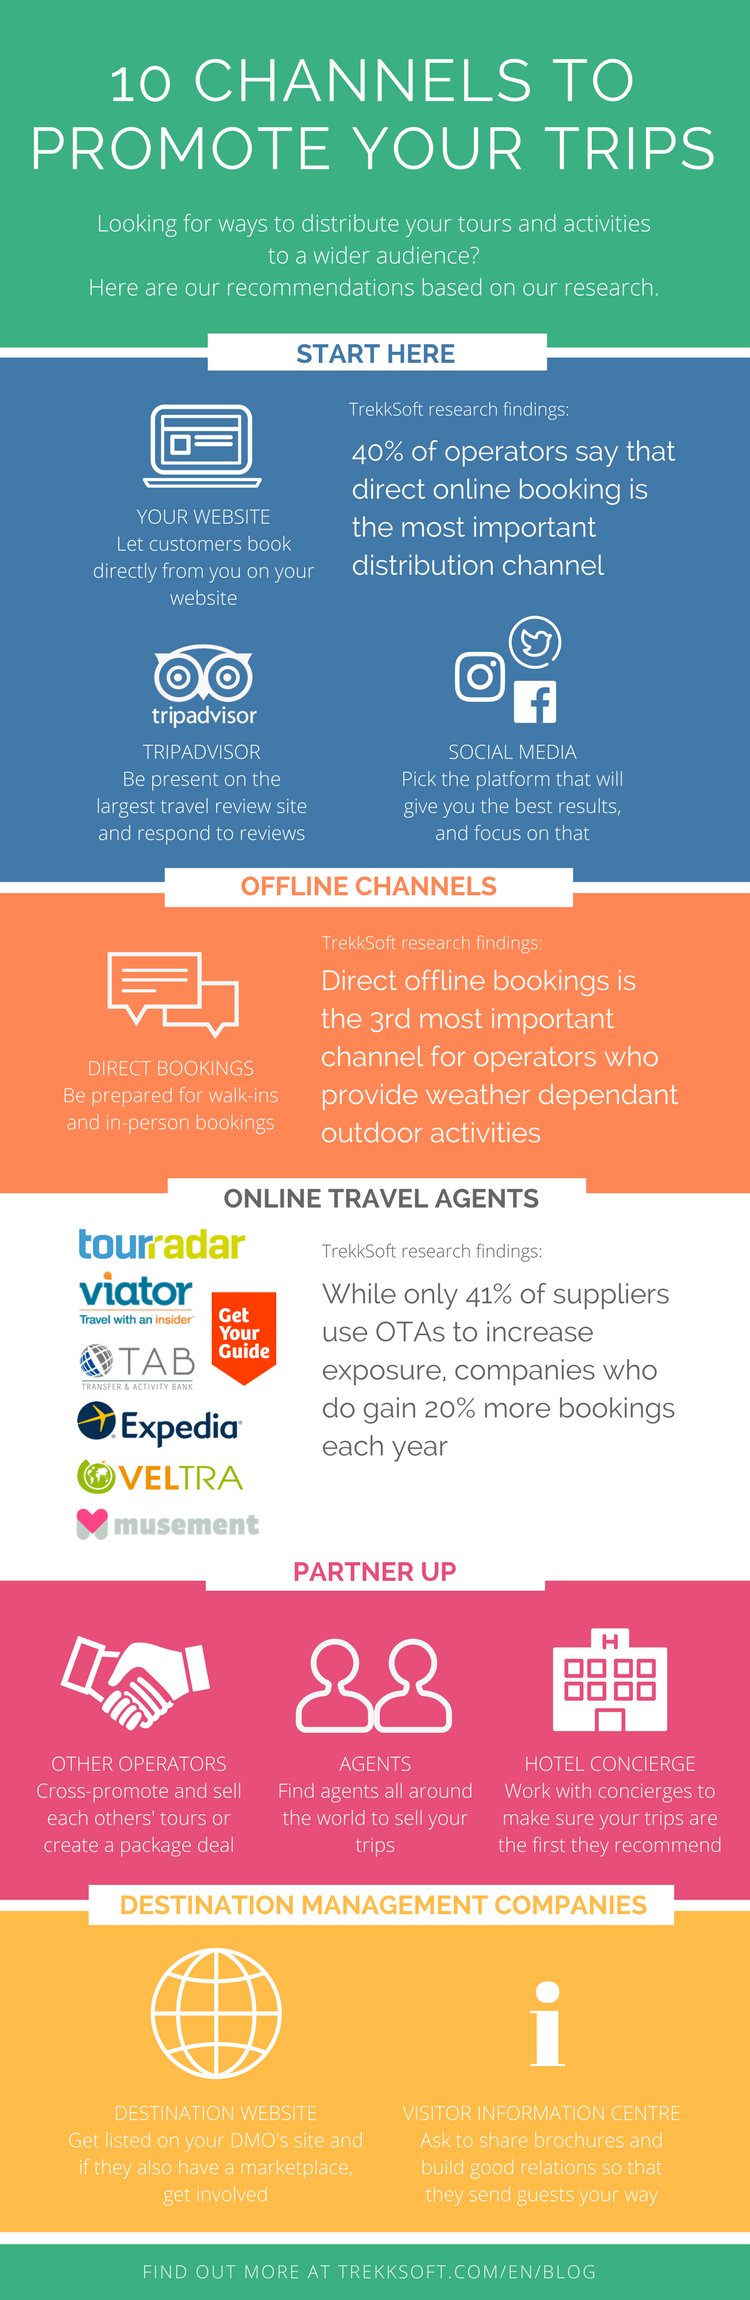 10 channels to promote your trips